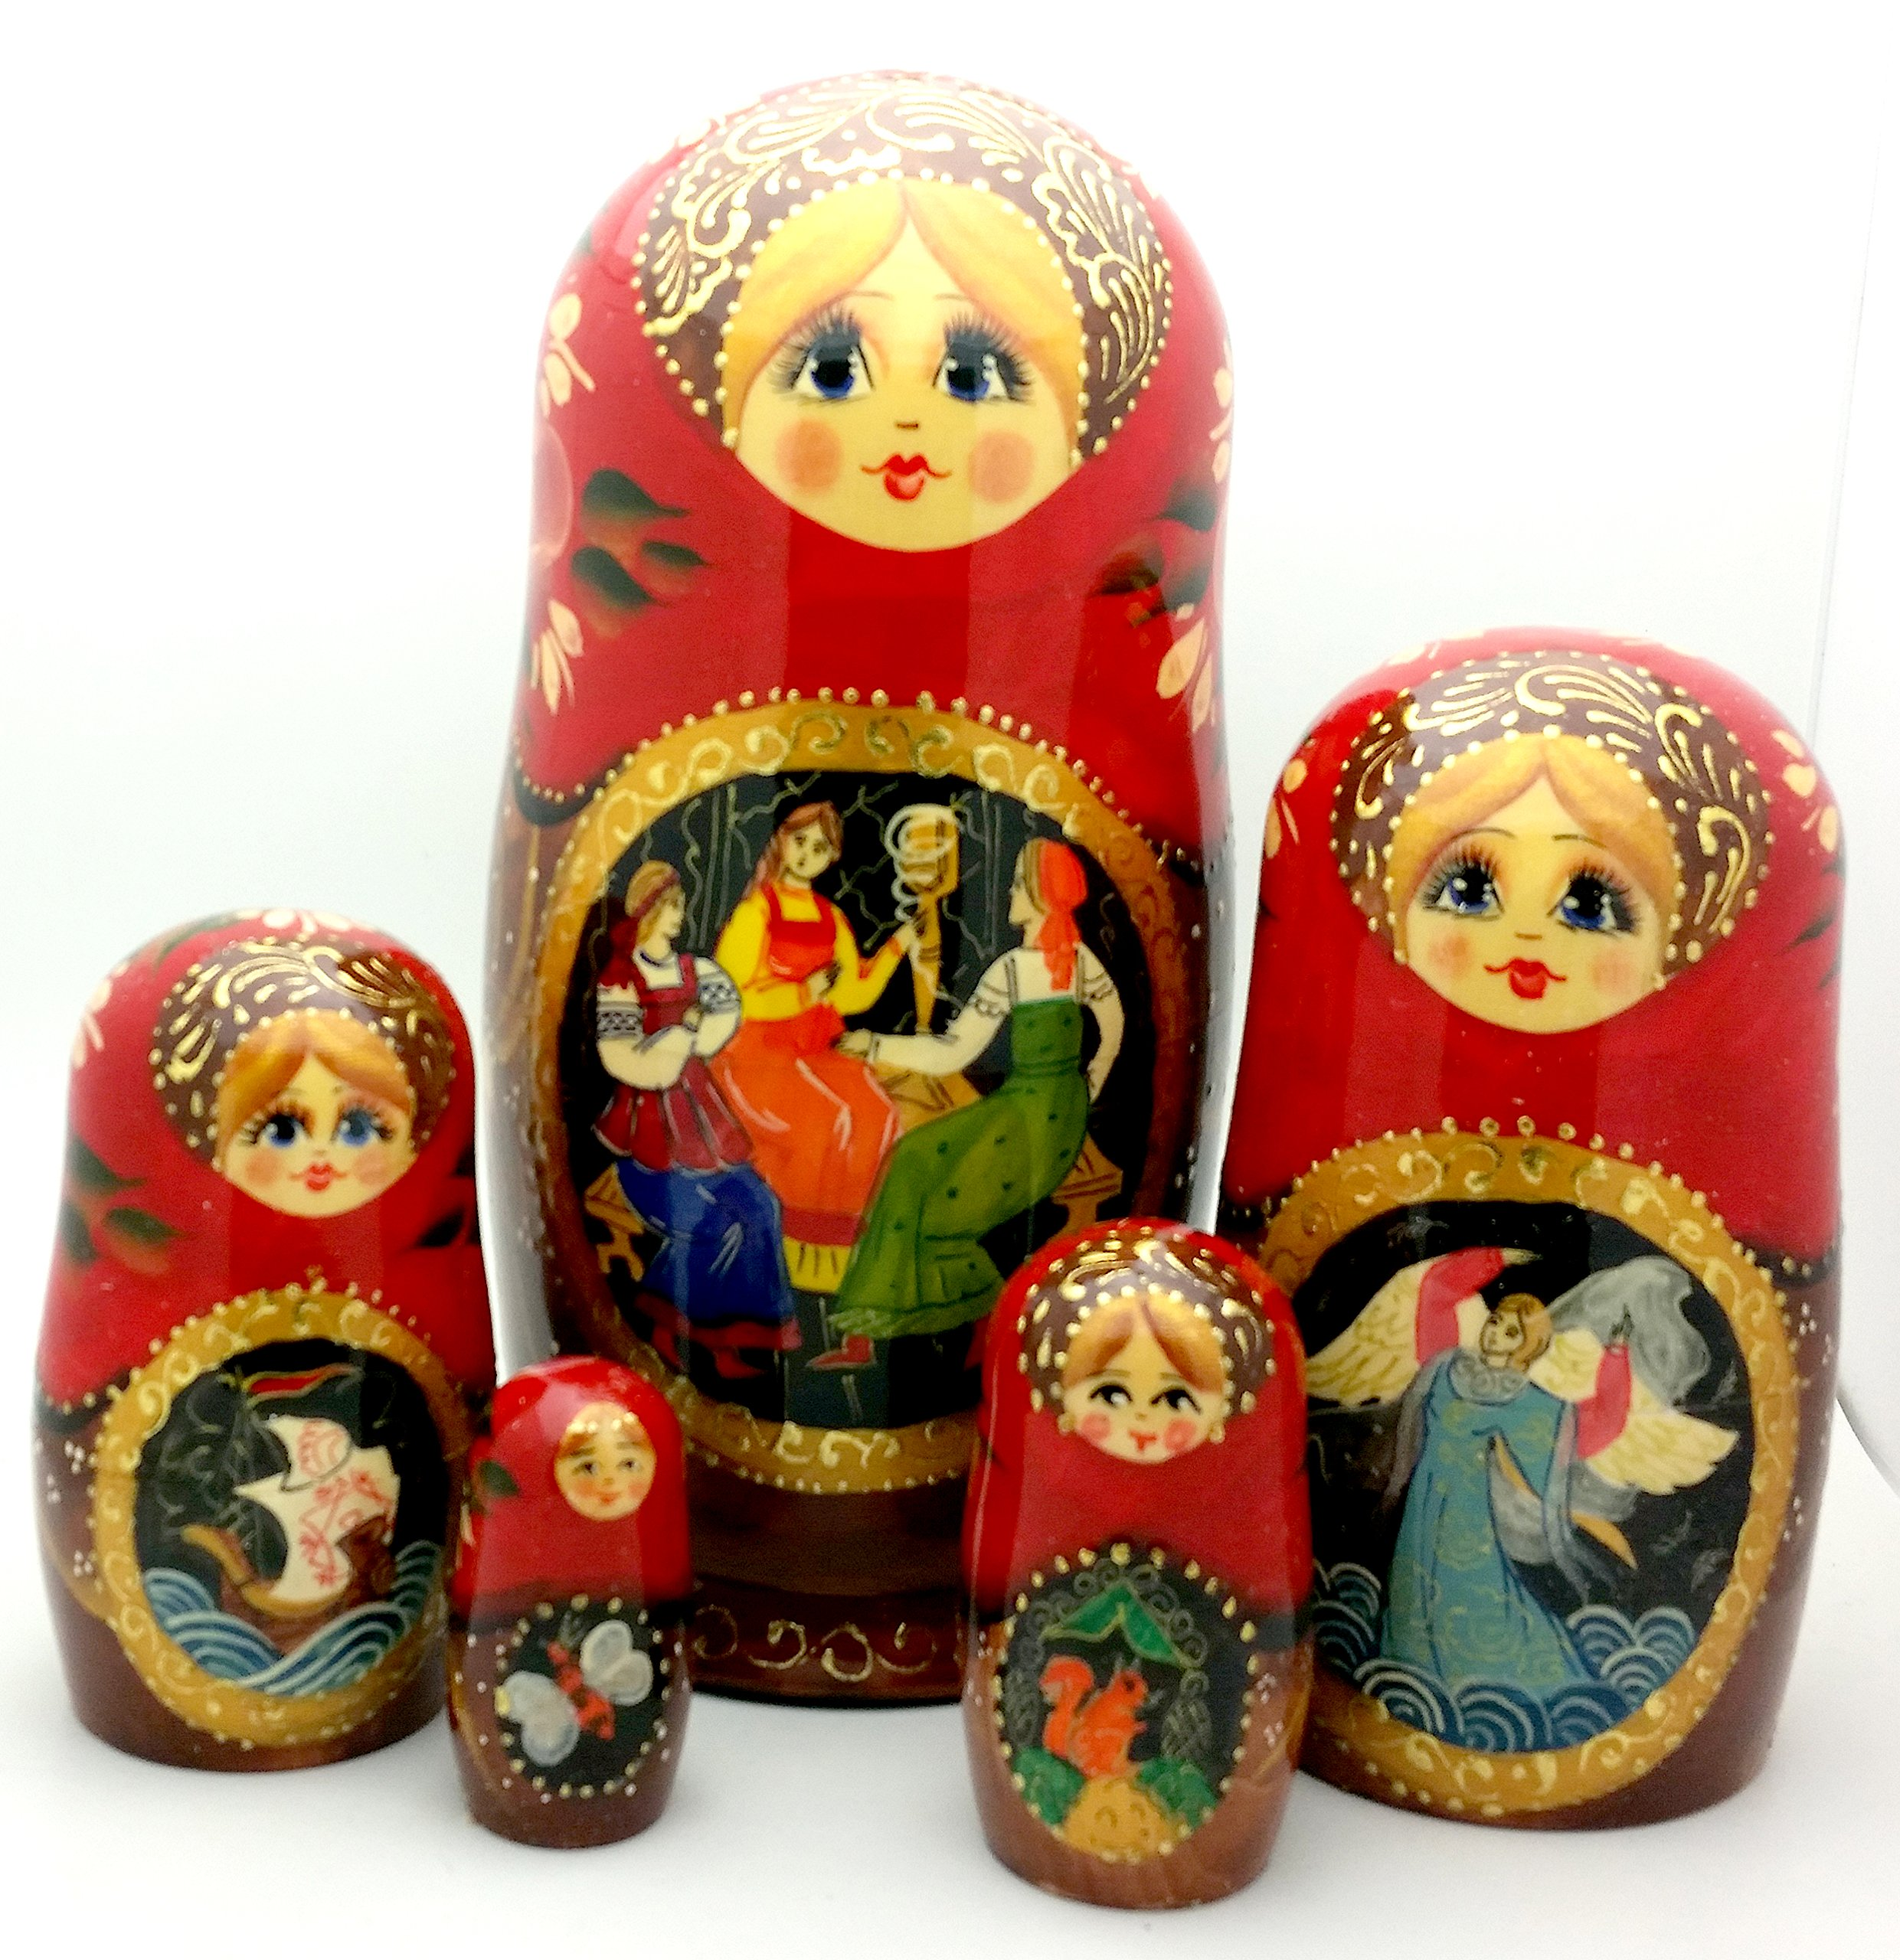 Tsar Saltan fairy tale by Pushkin Russian Nesting doll Hand Carved Hand Painted 5 piece Set 7'' tall